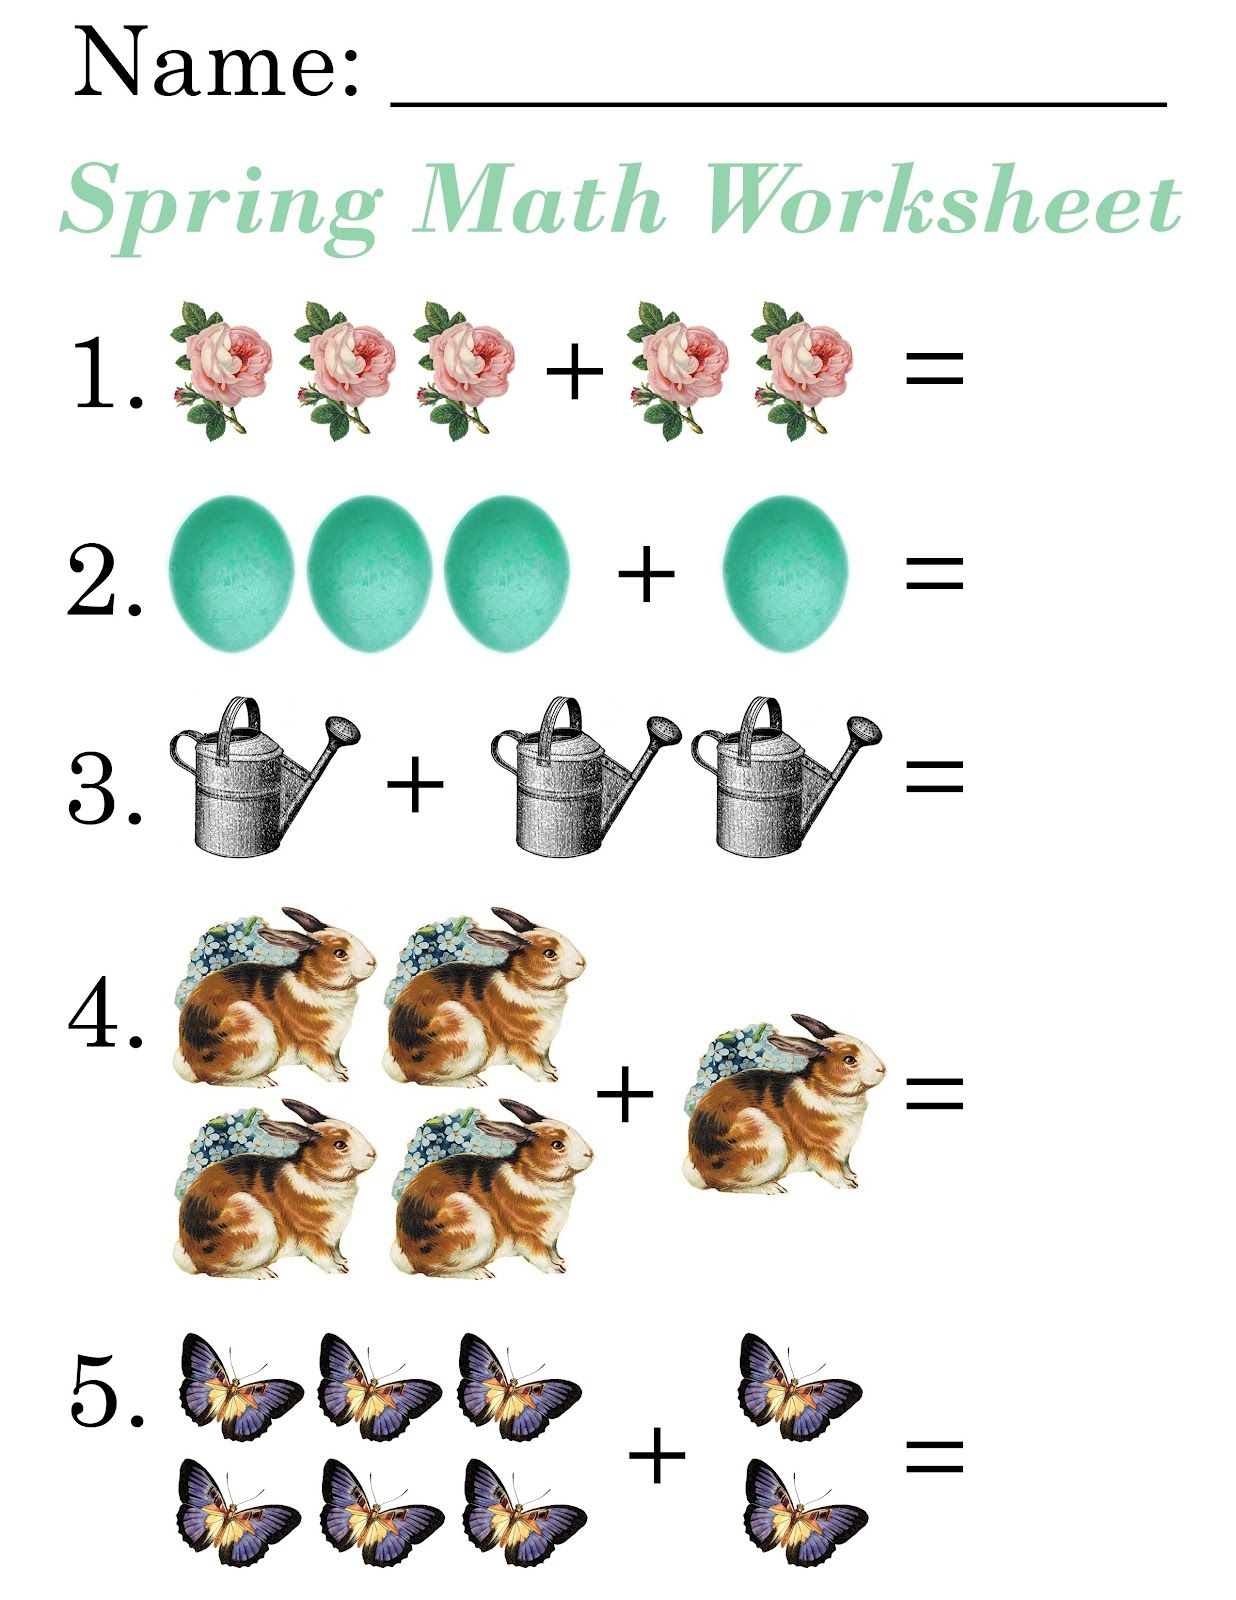 Lilac Lavender Kids Spring Math Worksheets – Math for Kids Worksheet